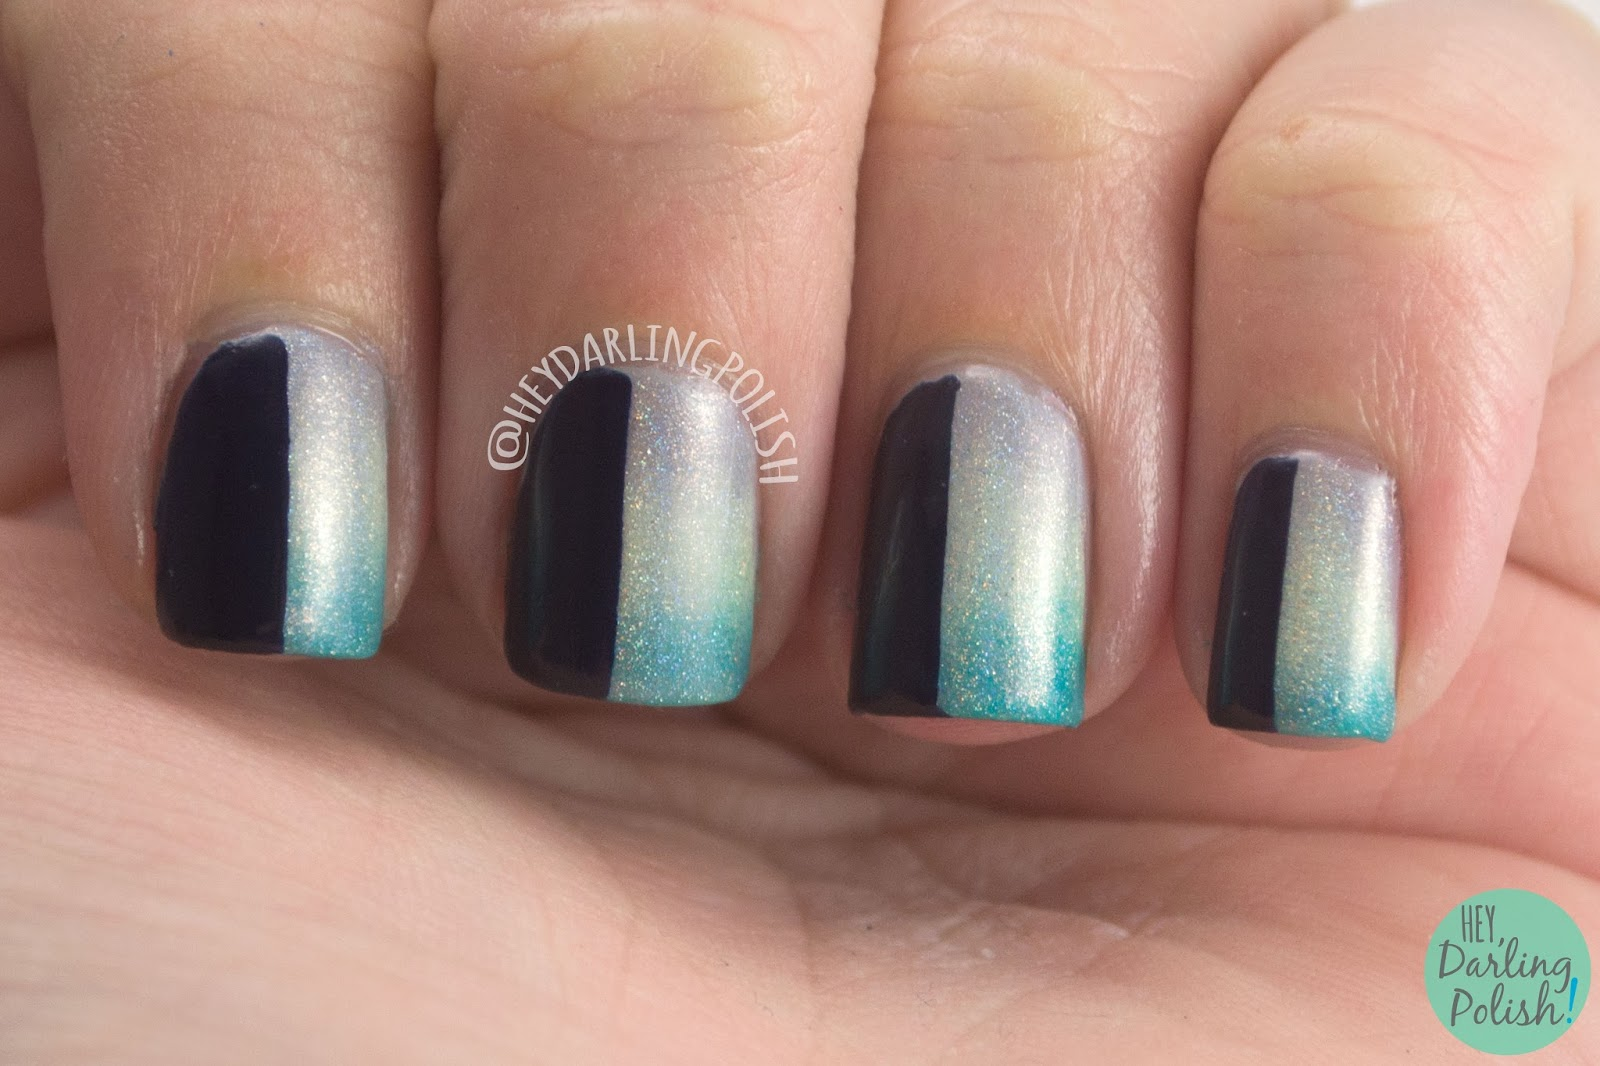 fairy godmother, gradient,green, holo, grey, blue, nails, nail art, nail polish, indie polish, fair maiden polish, hey darling polish,